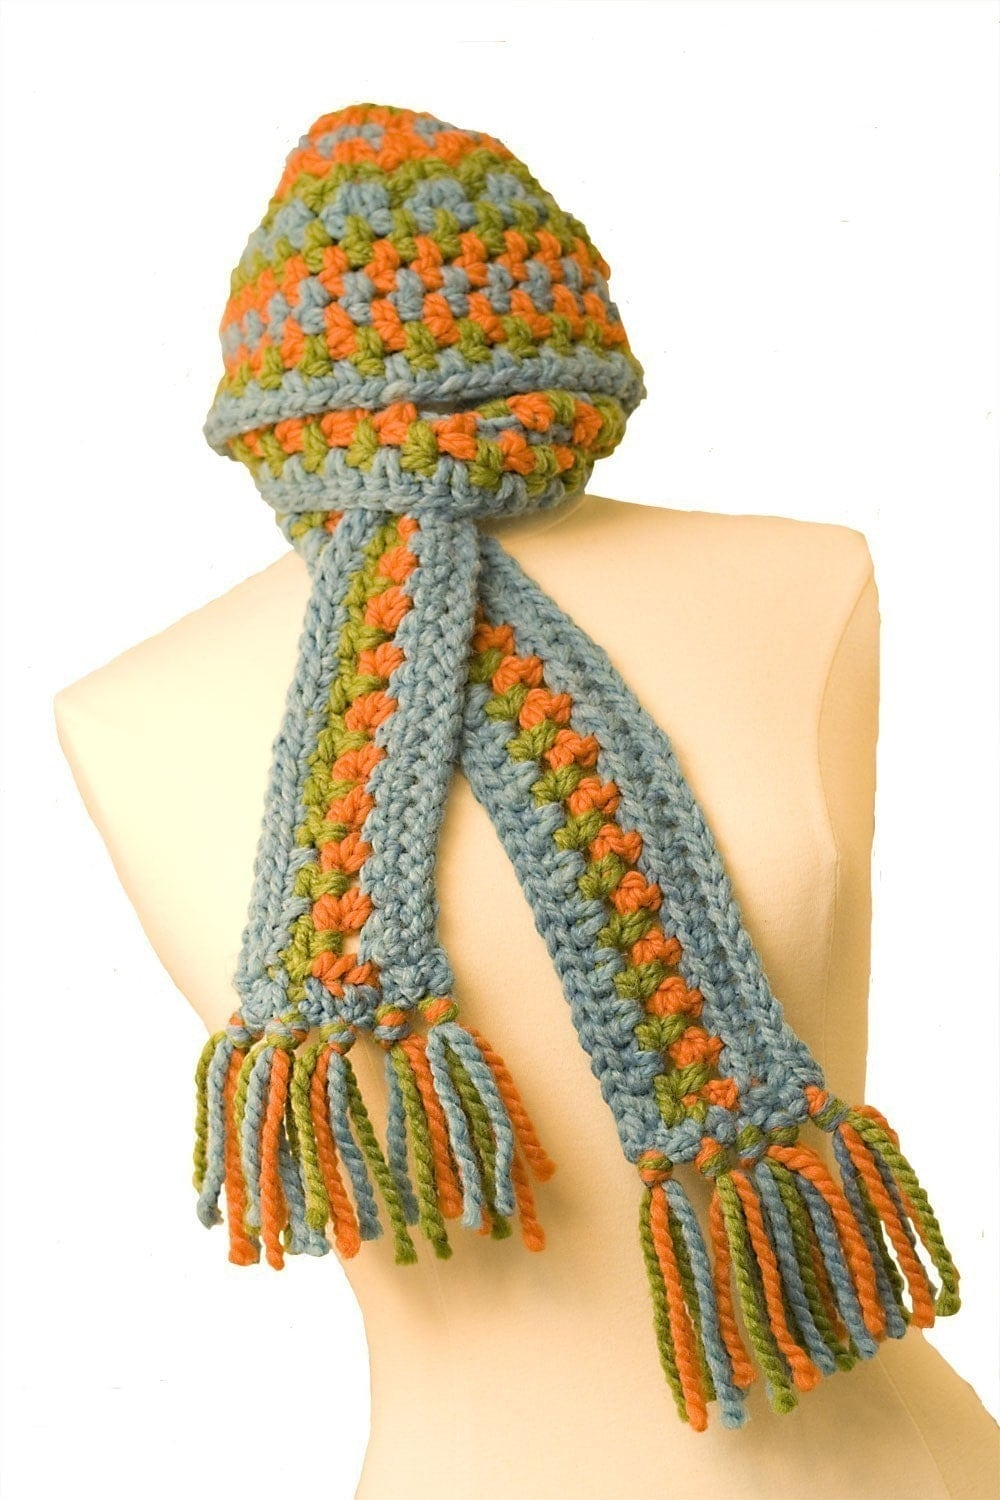 Crochet Patterns For Scarf And Hat : Crochet Scarf Patterns Find Free Patterns For Crocheting ...